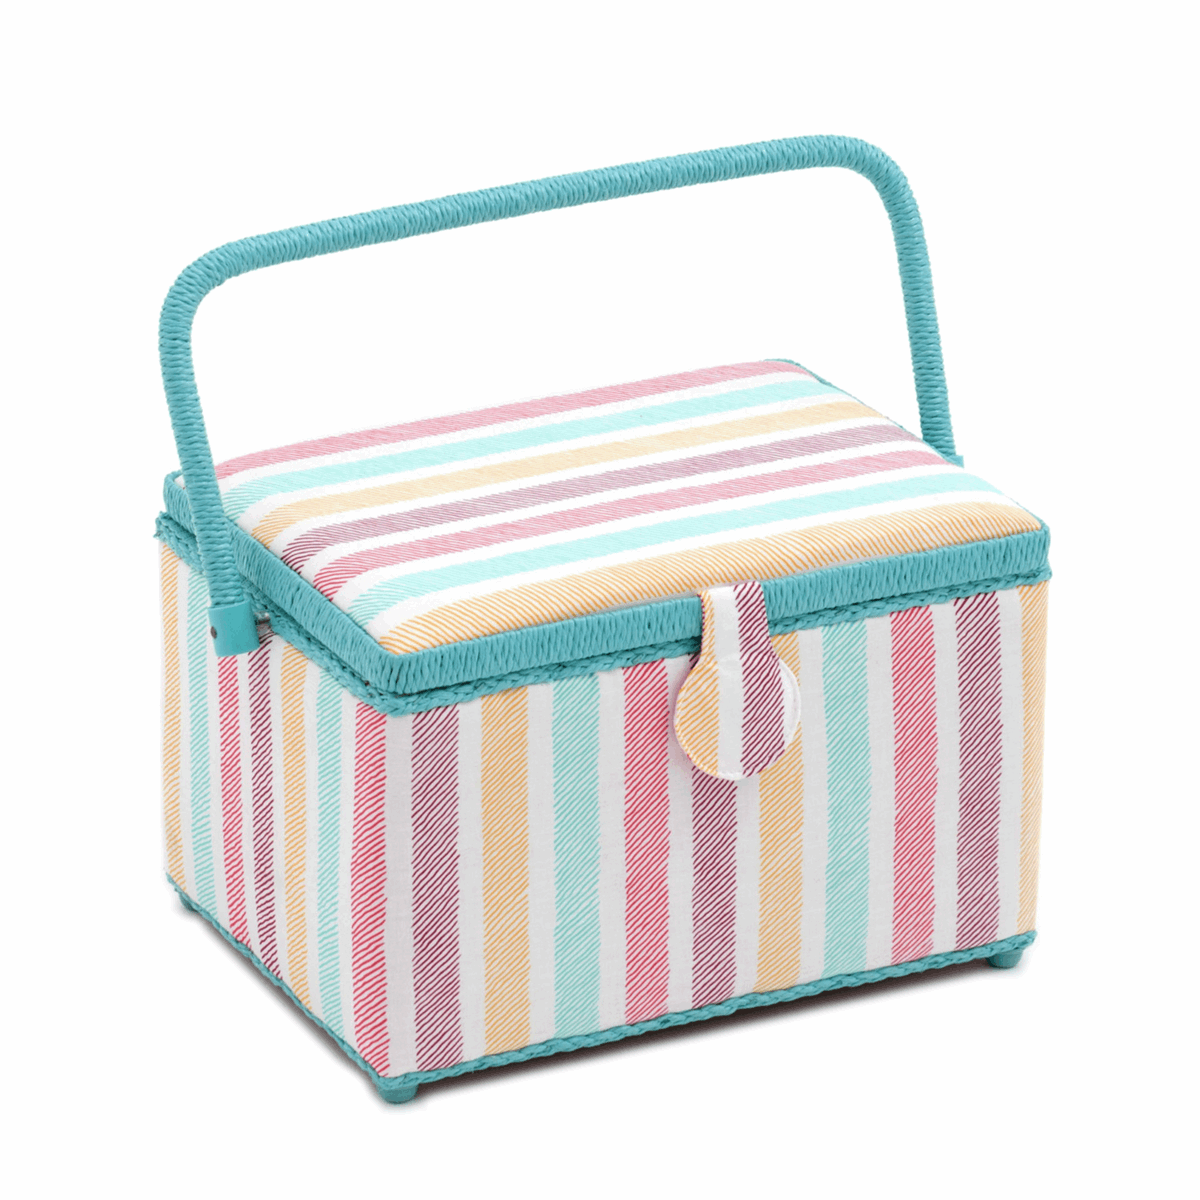 Picture of S&W Collection: Sewing Box (M): Deep: Sketch Stripe